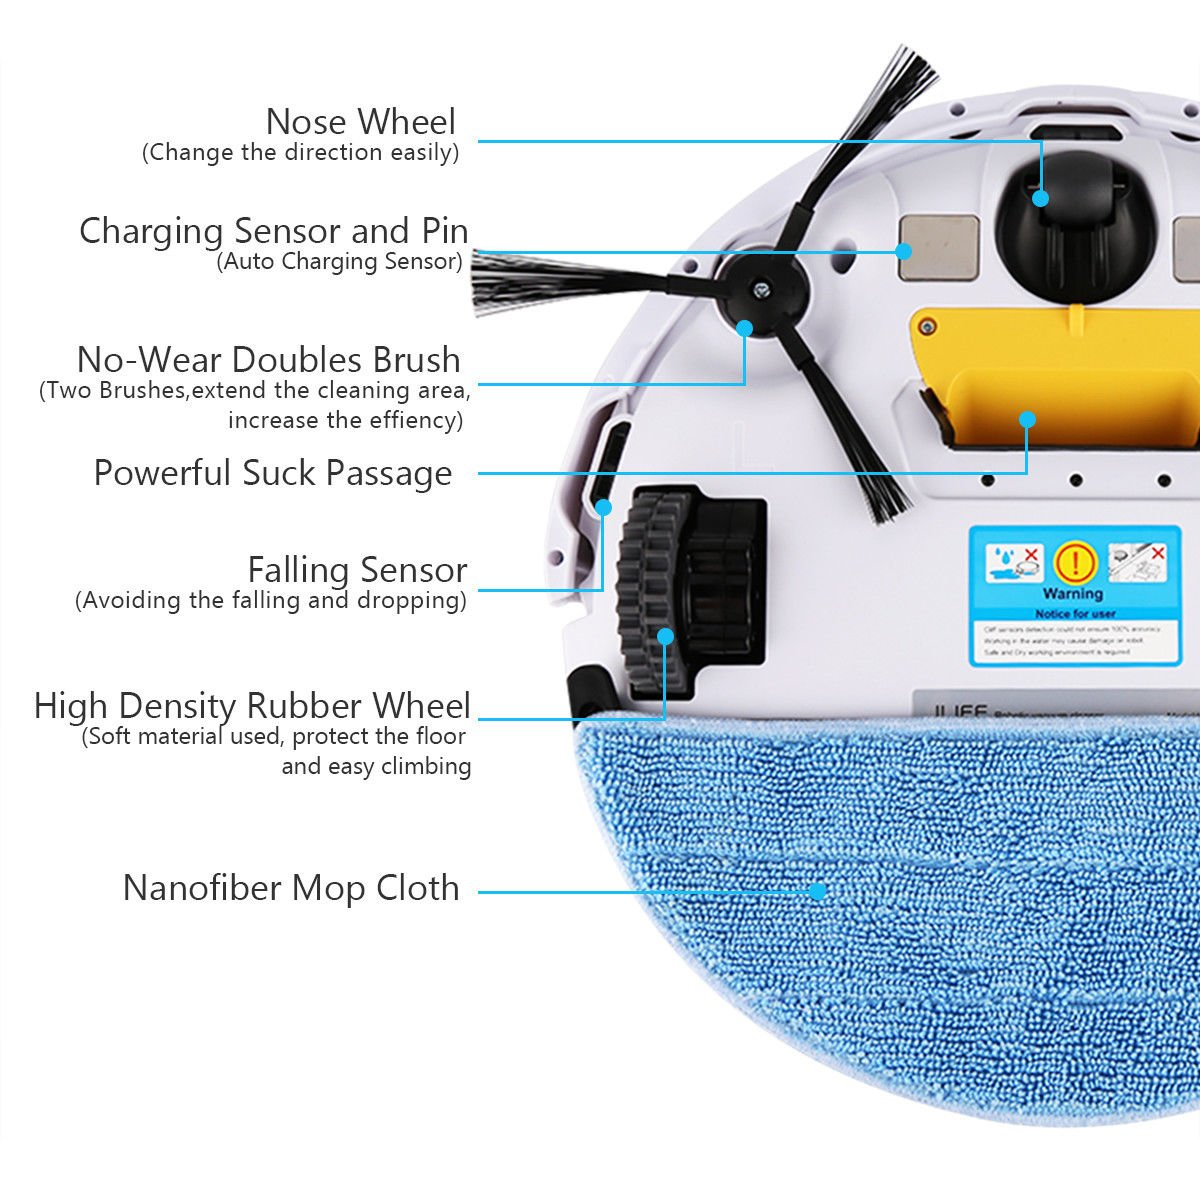 Cleaner Smart Robot Vacuum Cleaning Floor Auto Dust Microfiber Robotic Sweeper Mop Automatic by Alek...Shop (Image #8)